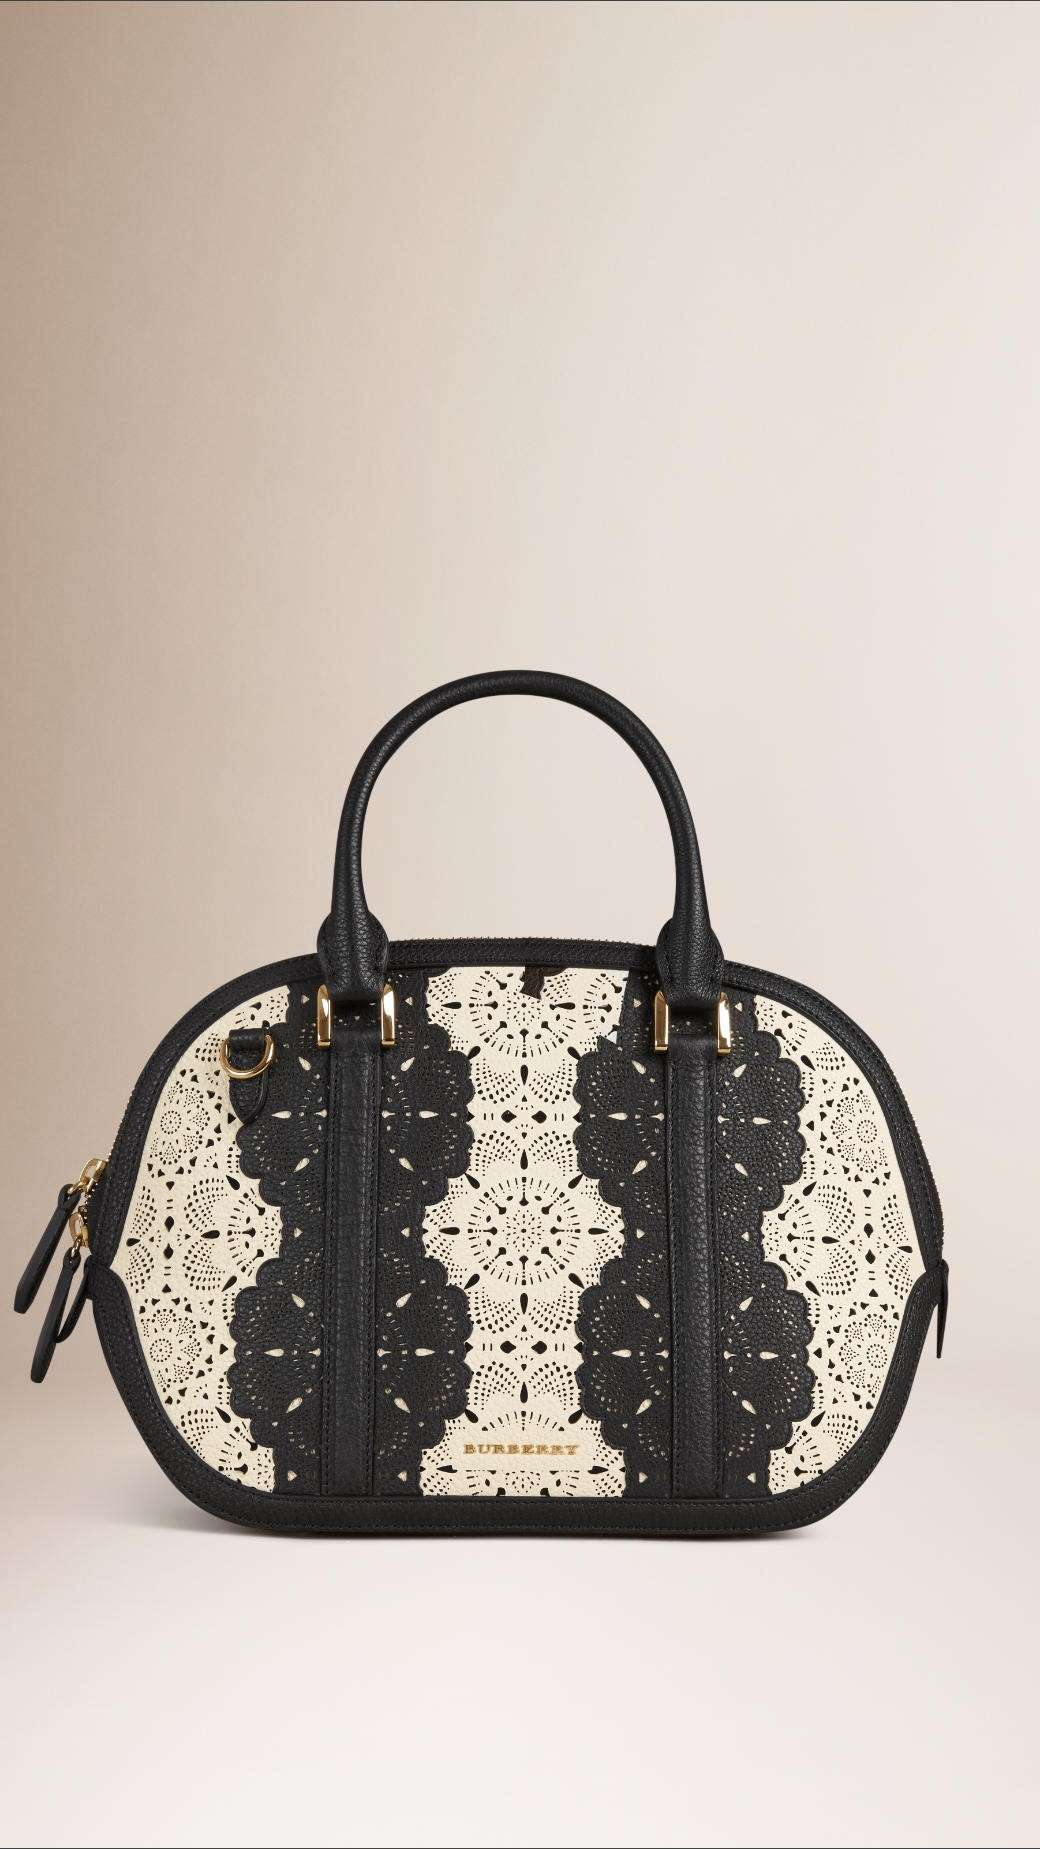 Handbag The Orchard effetto pizzo